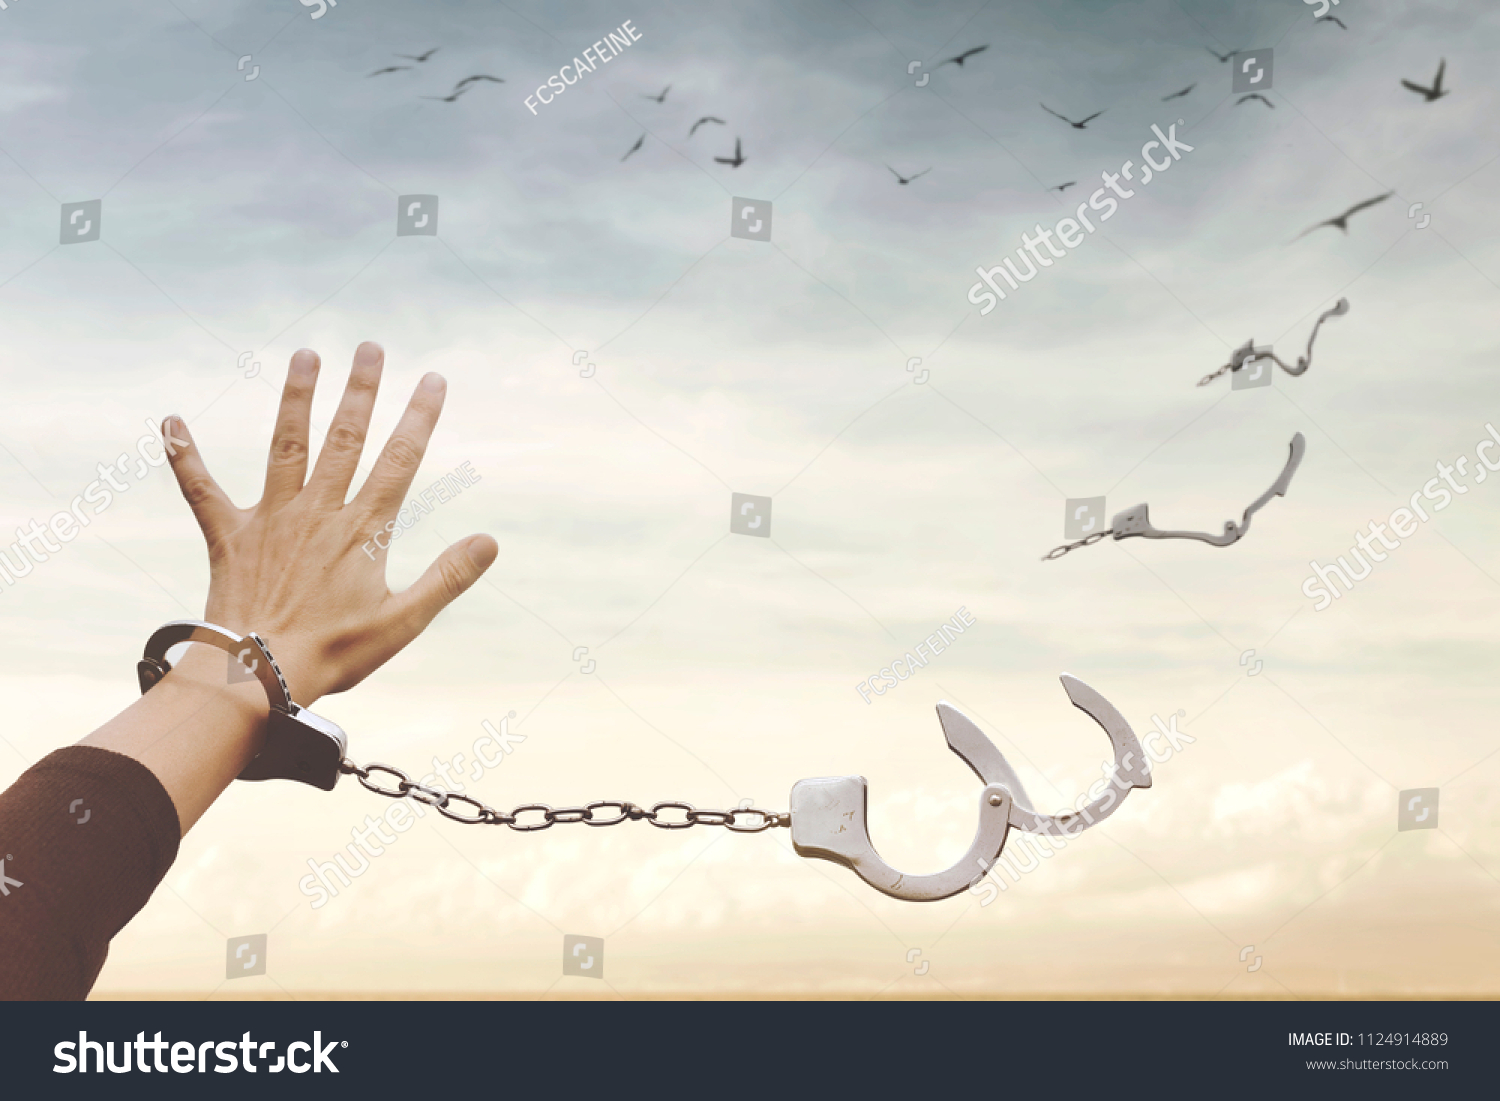 conceptual image of a broken handcuff that turns into free birds in the sky